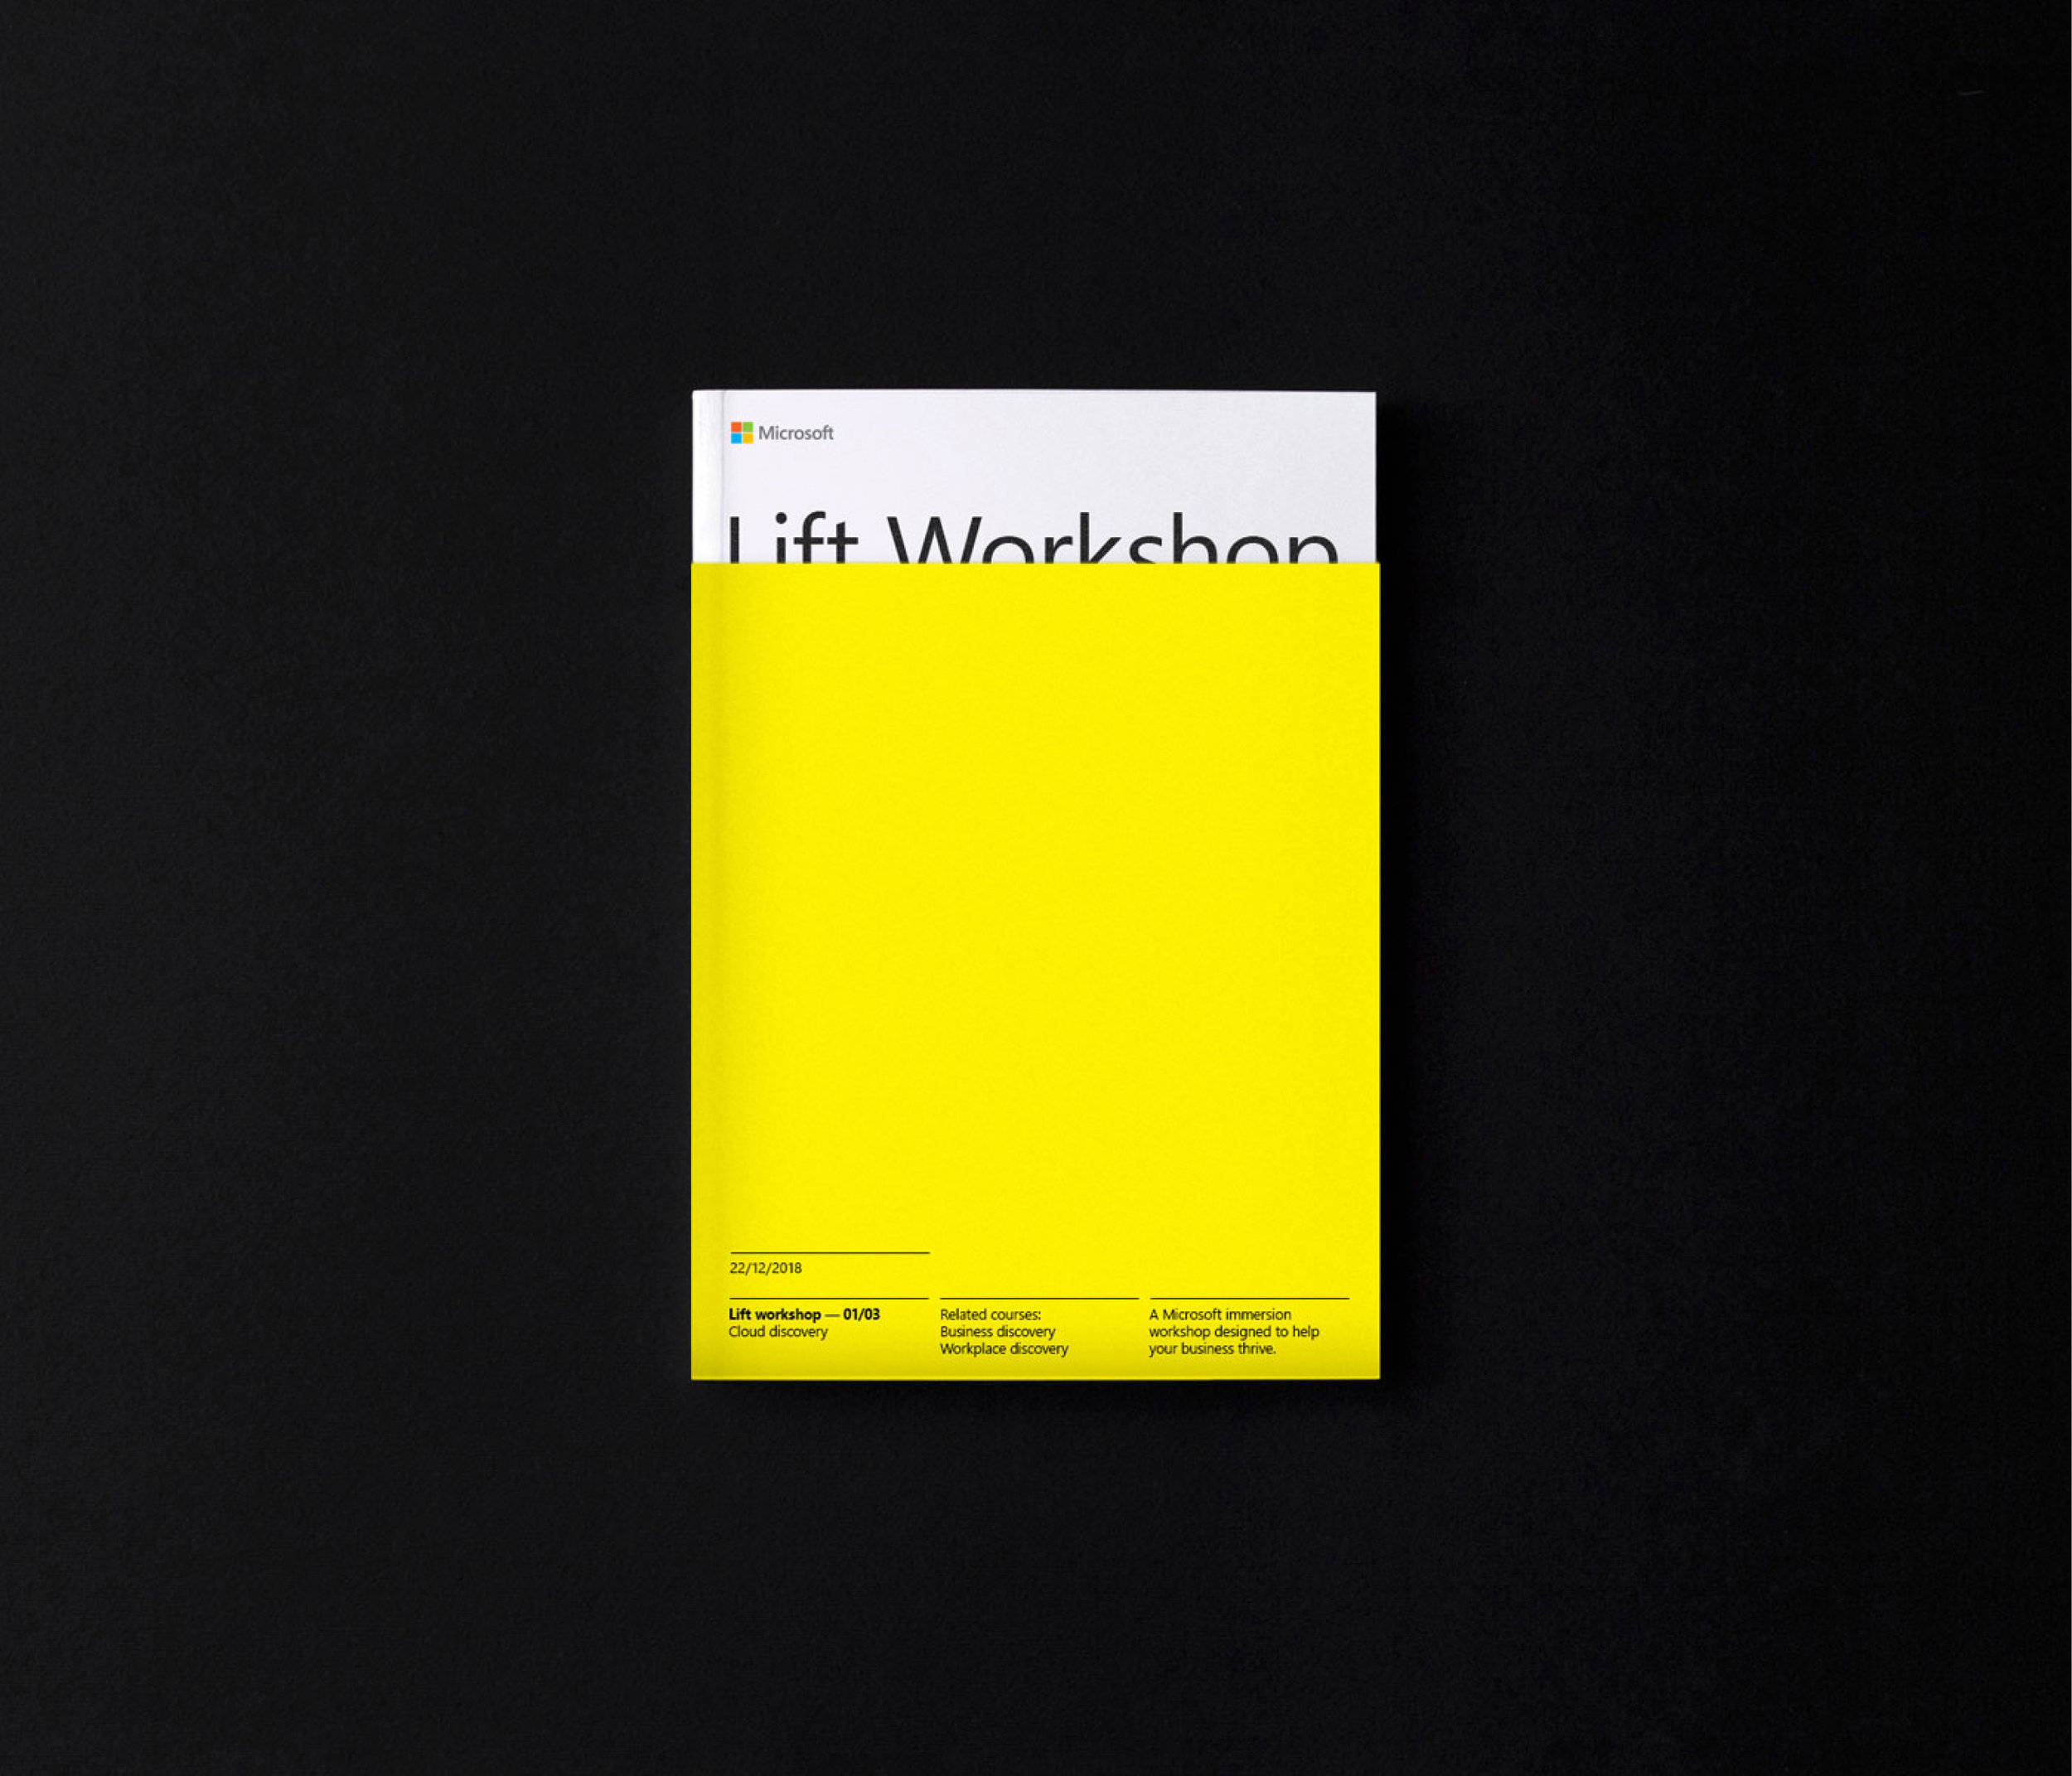 Microsoft — Lift workshop